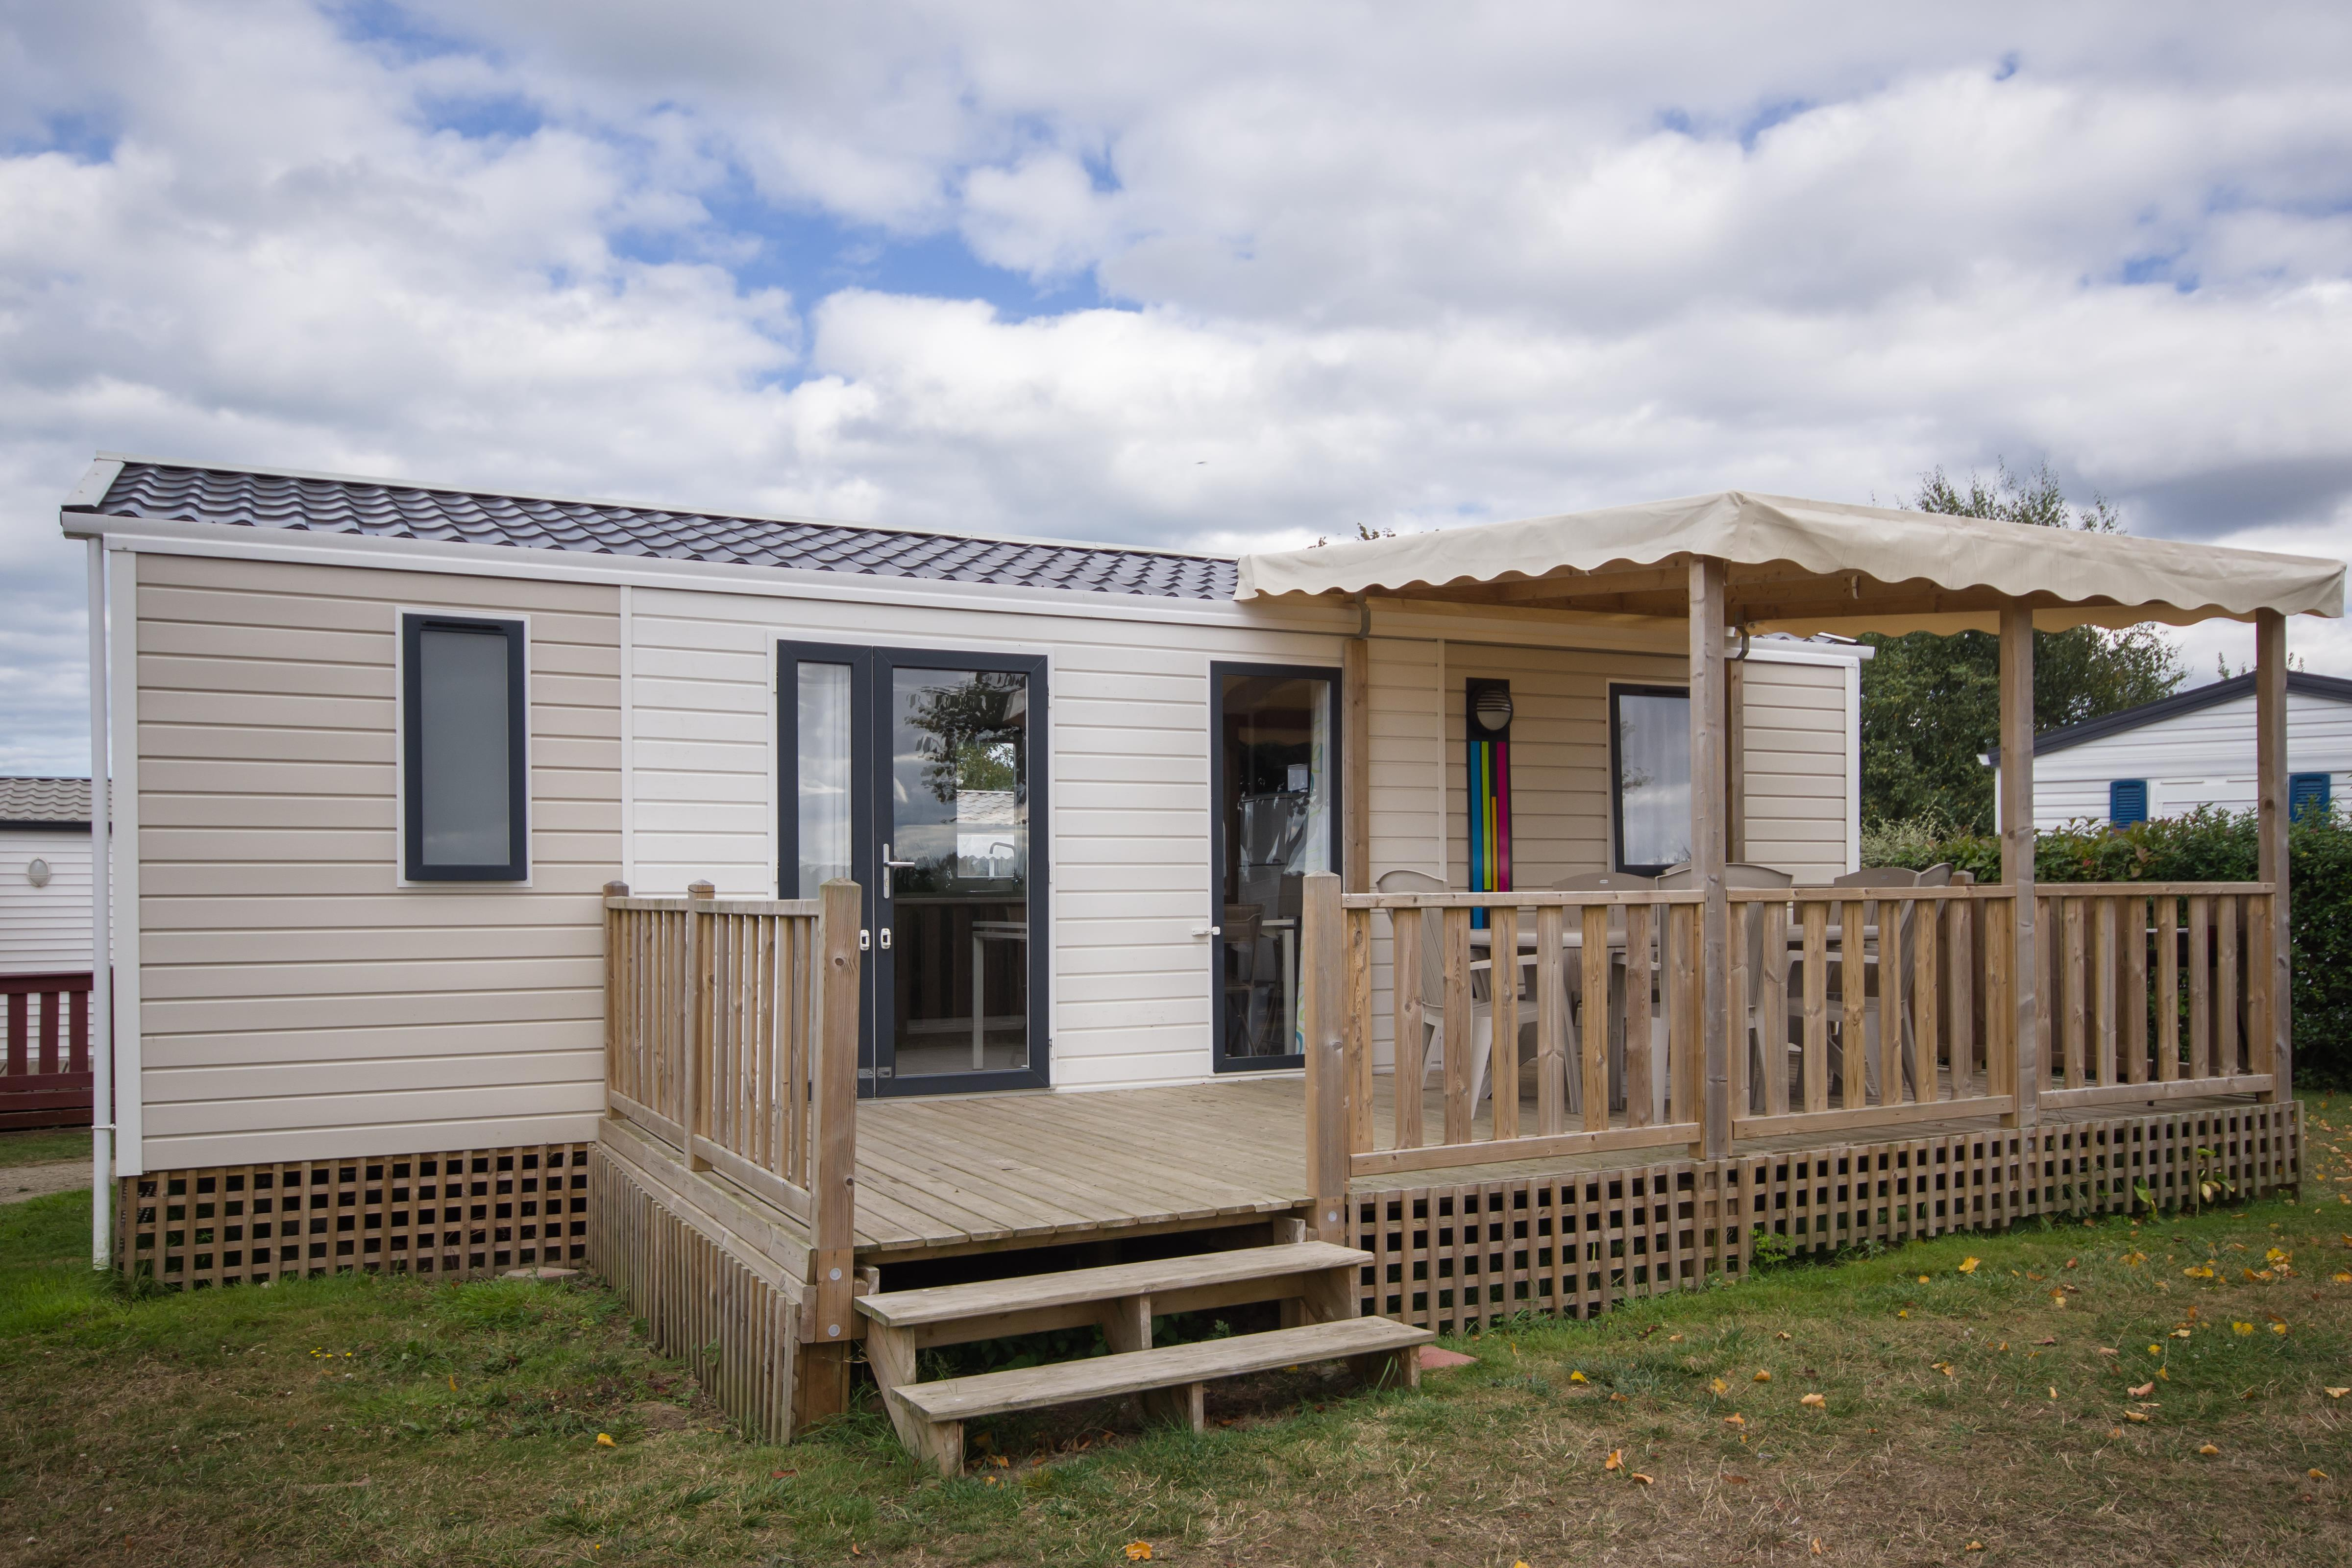 Locatifs - Mobile Home Nirvana 2  32 M² Avec Terrasse Couverte - Camping Le Panoramic